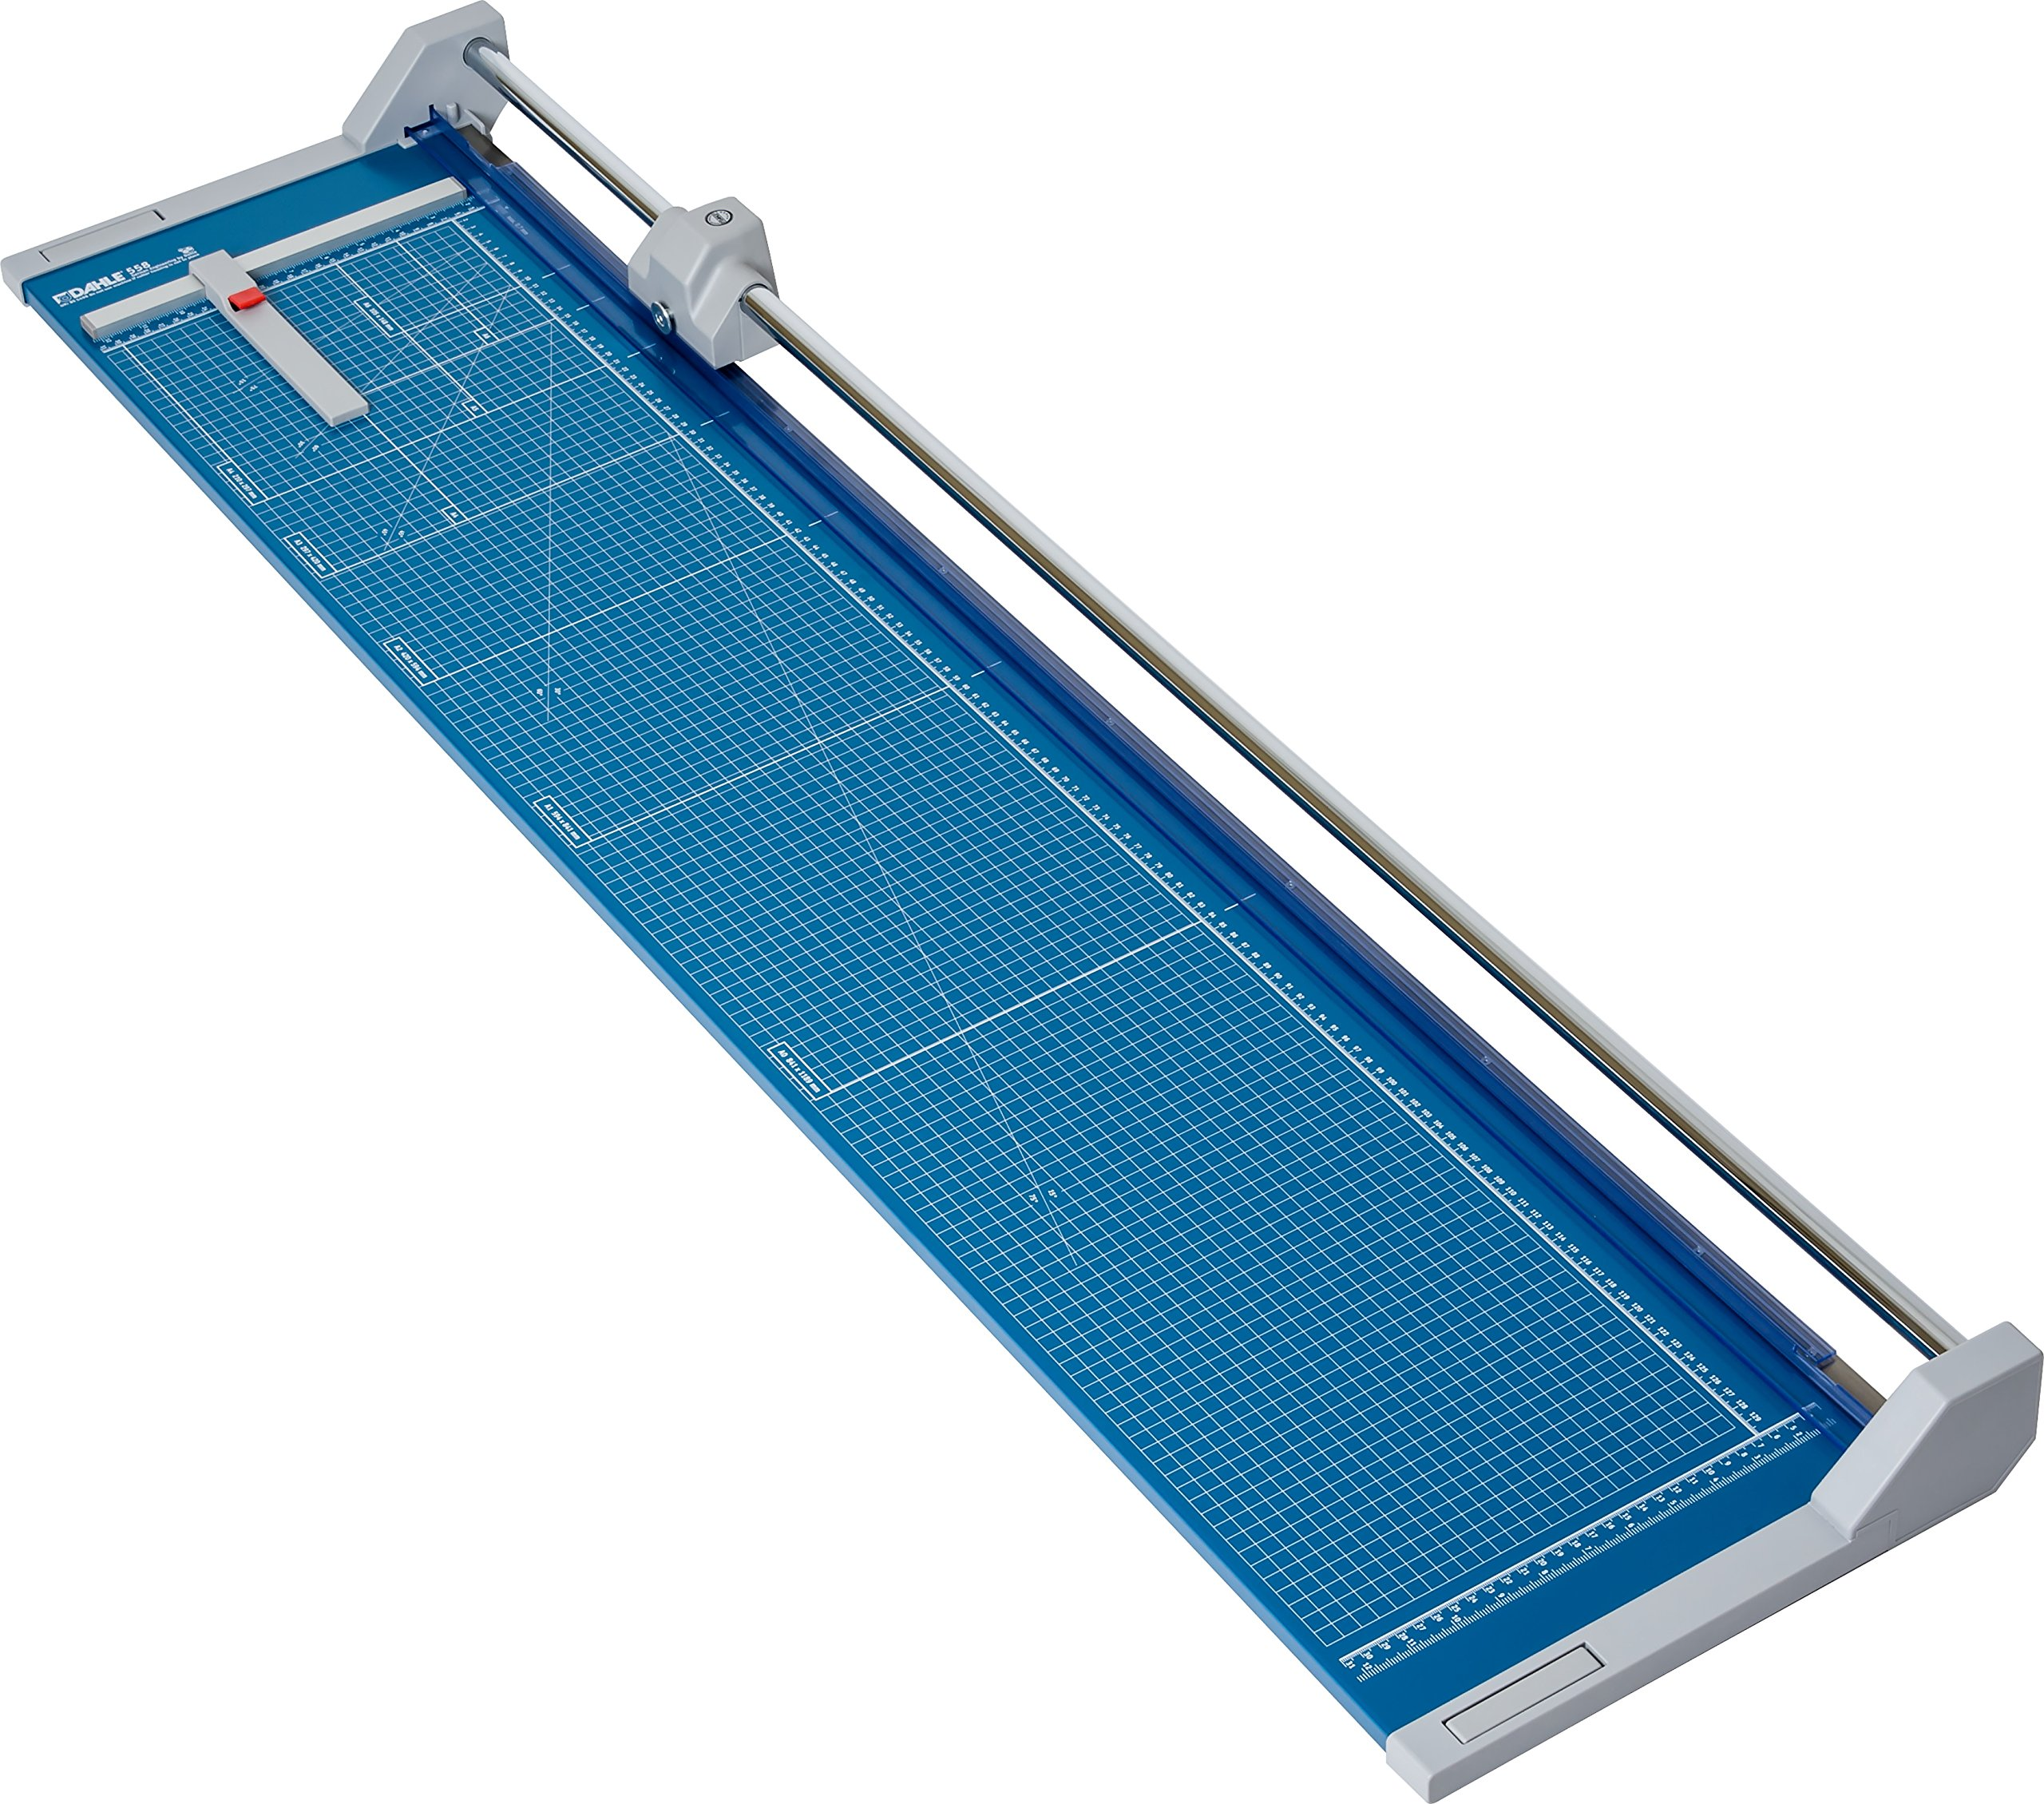 Dahle 558 Professional Rolling Trimmer, 51 1/8'' Cut Length, 12 Sheet, Self Sharpening Blade, Cuts in Either Direction, Automatic Paper , Metal Base, Paper Cutter by Dahle